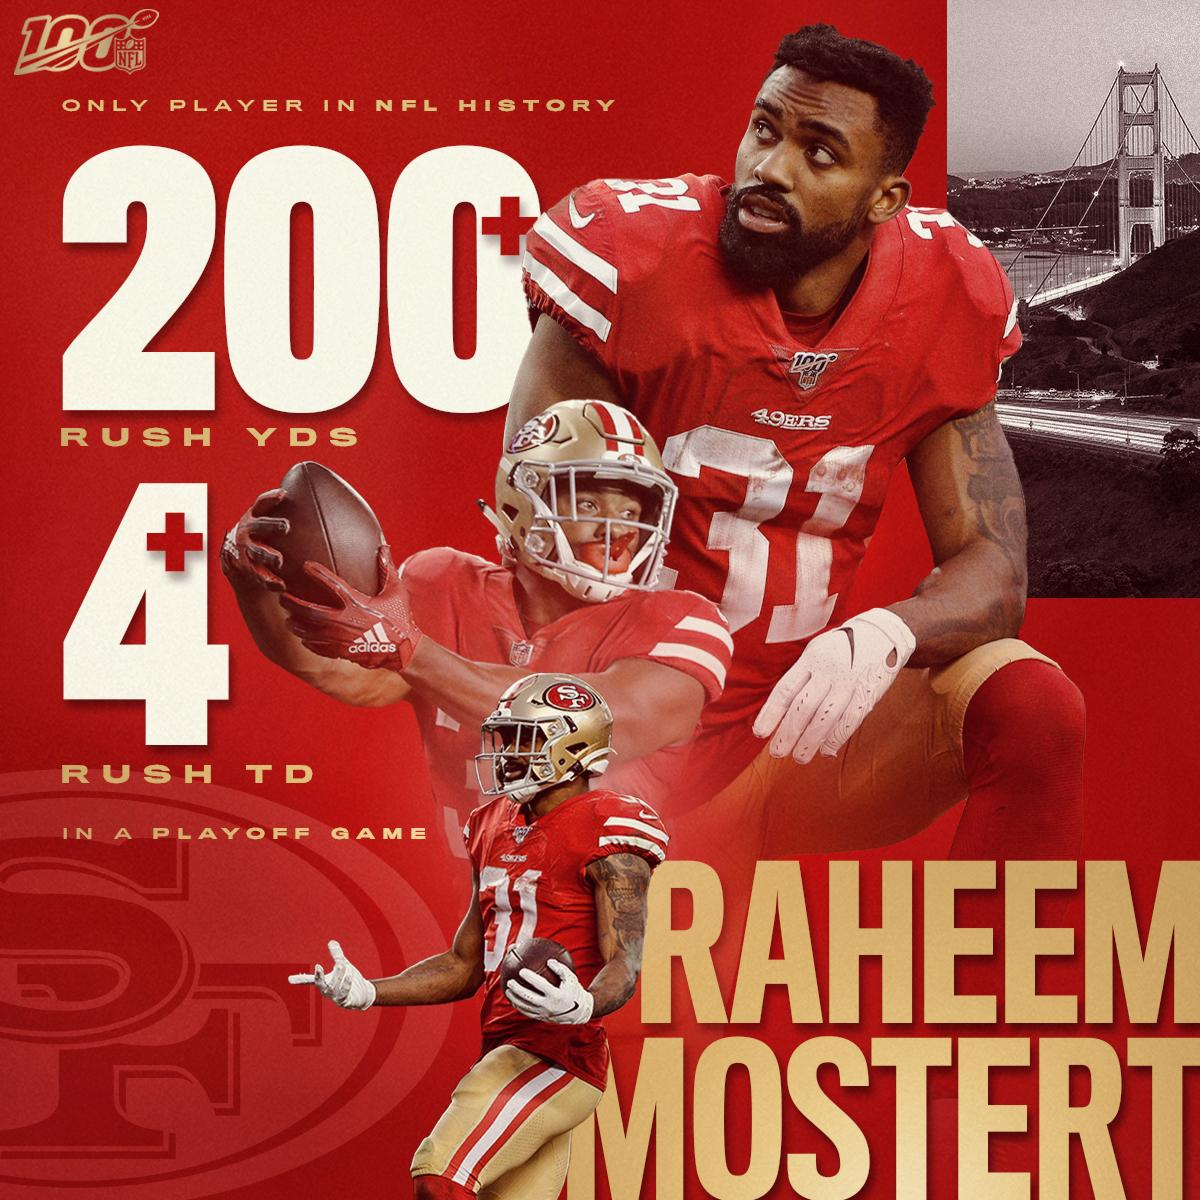 Nfl On Twitter Six Teams Cut Raheem Mostert He Ran His Seventh Team To The Superbowl And Made History Doing It Rmos 8ball 49ers Goniners Https T Co Q9qbs7rn9v